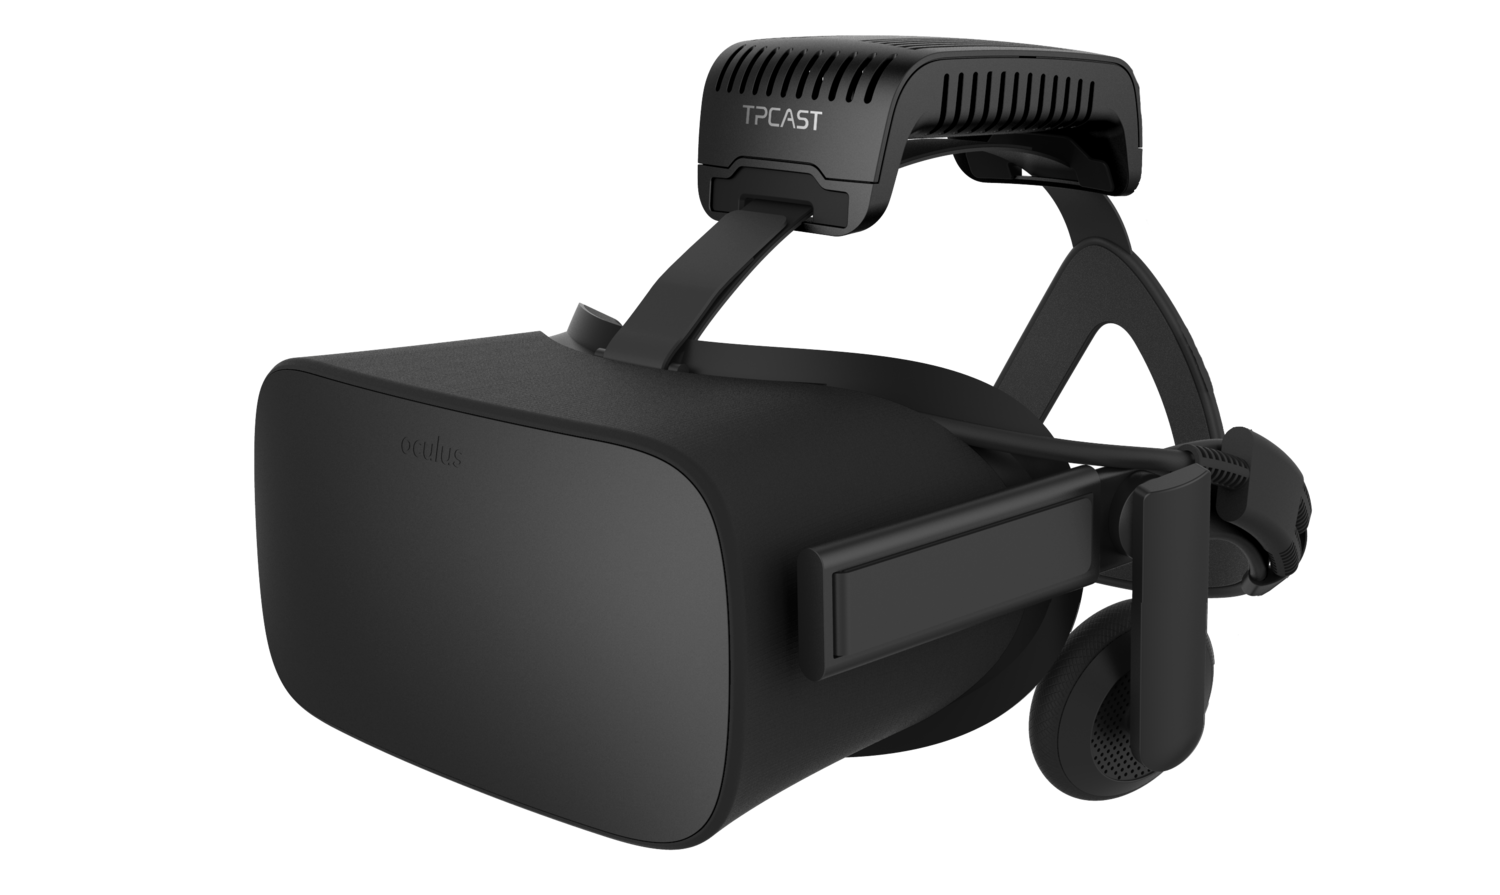 TPCast Wireless Adapter for Oculus Rift or HTC Vive on sale - $149 + shipping (about $40)